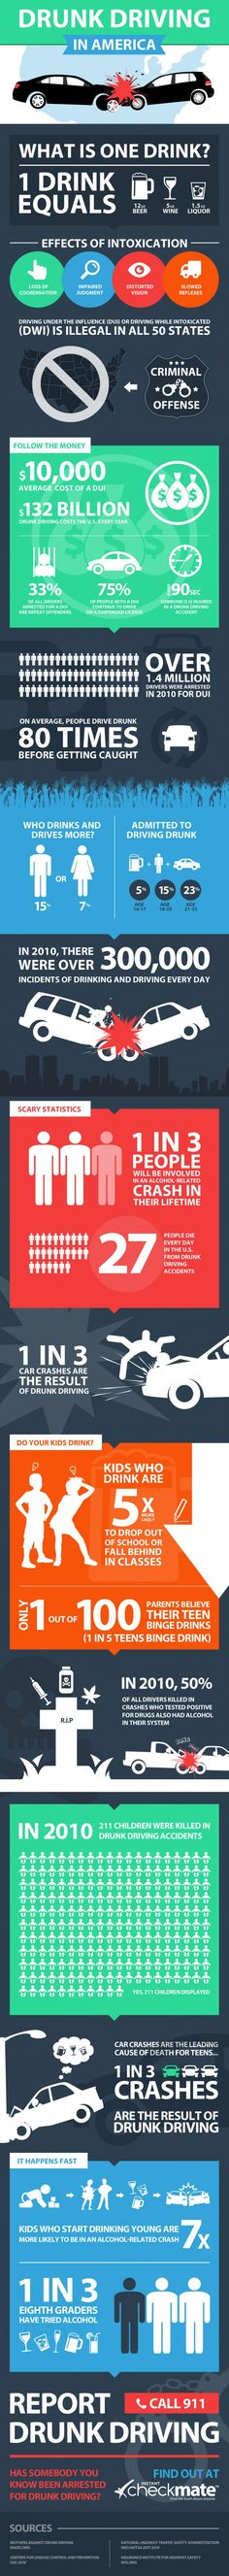 Drunk Driving in America, infographic. We need to put an end to drunk driving! I know way too many people who have been impact themselves or know someone who has been impacted by a drunk driver! Distracted Driving, Drunk Driving, Driving Tips, Teen Drinks, Driving Safety, Dont Drink And Drive, Addiction Recovery, Sober